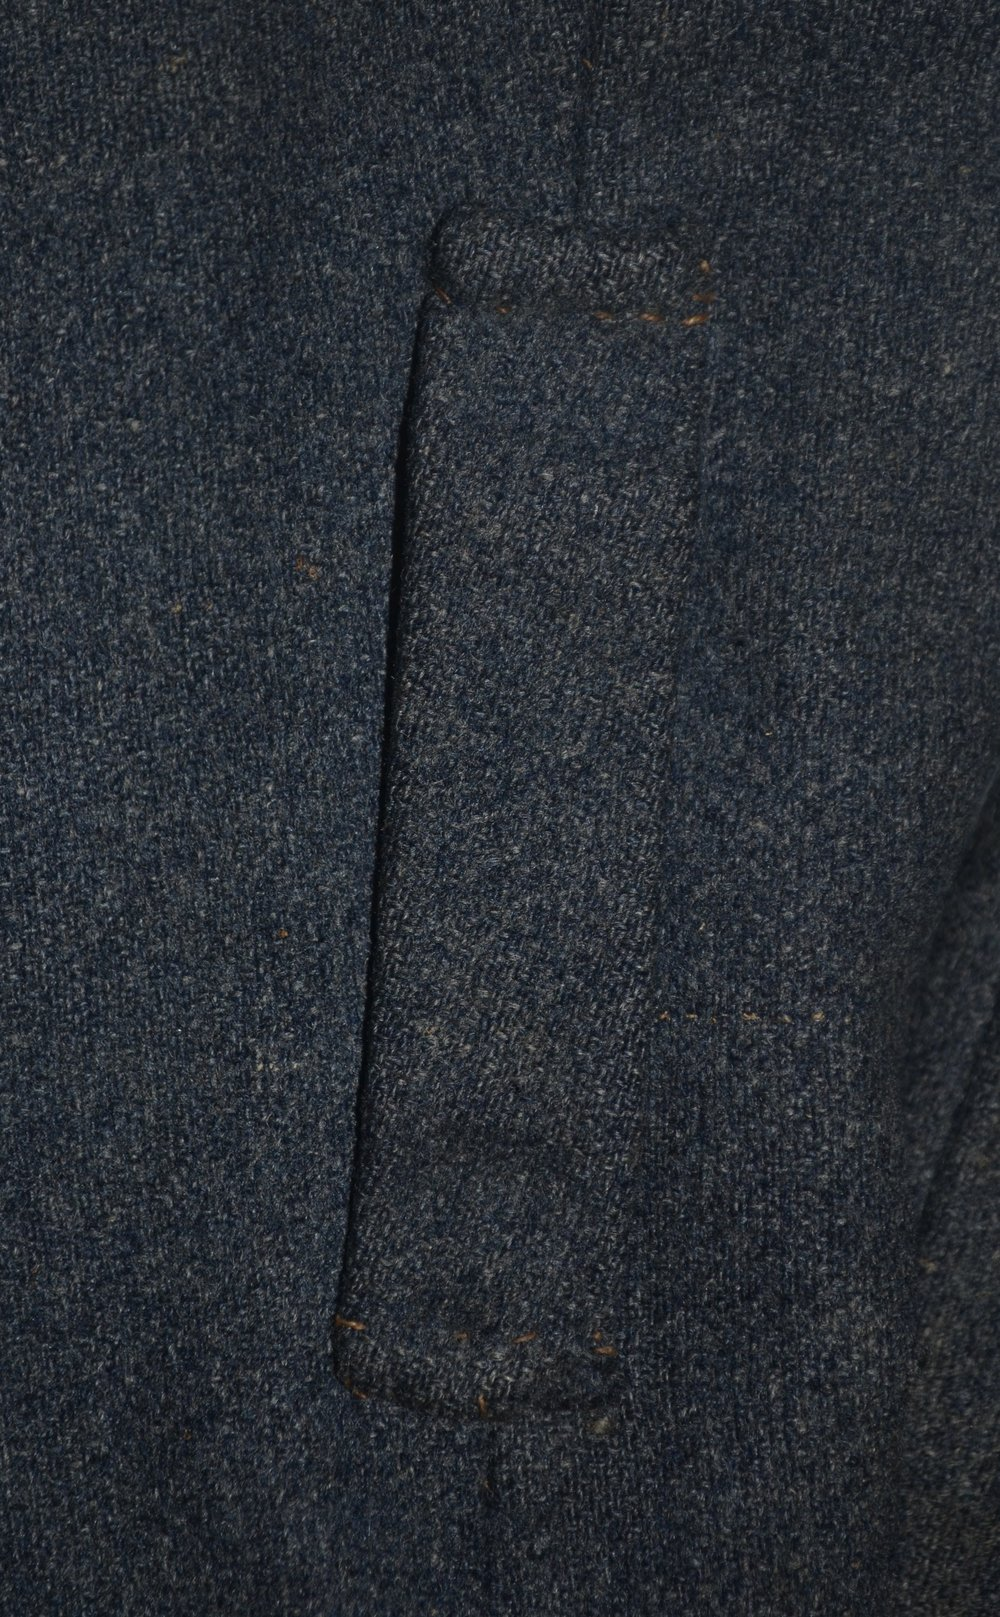 George H T Greer jacket – centered on side  seam